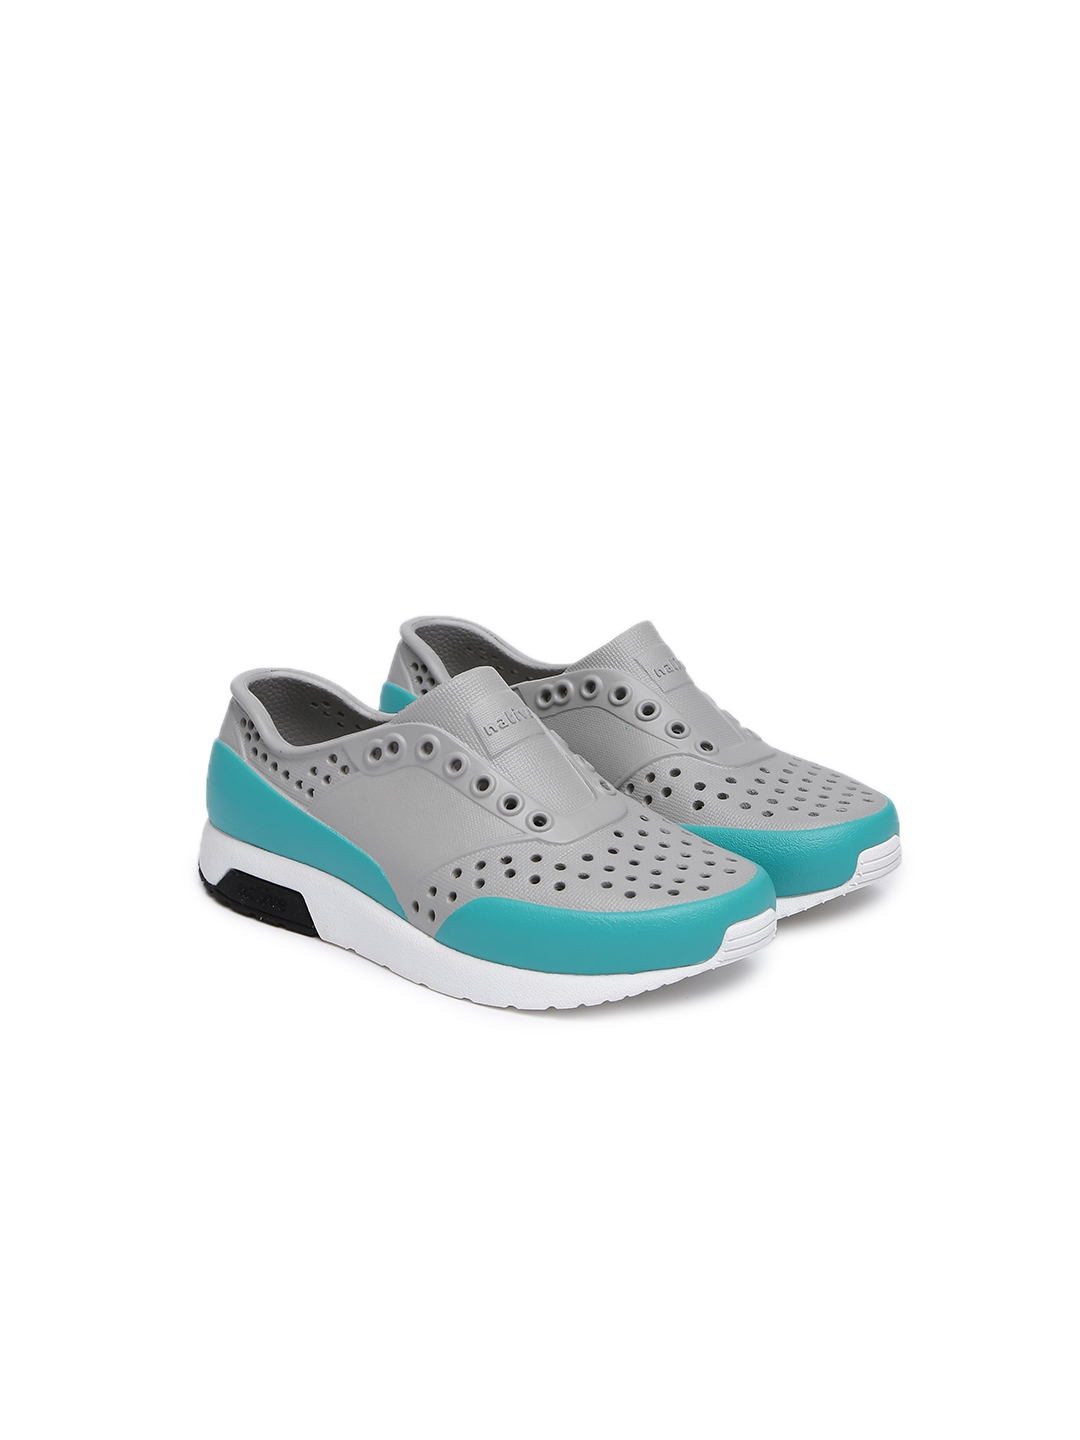 f61074b806c5a Buy Native Shoes Kids Grey Lennox Slip On Sneakers - Casual Shoes ...